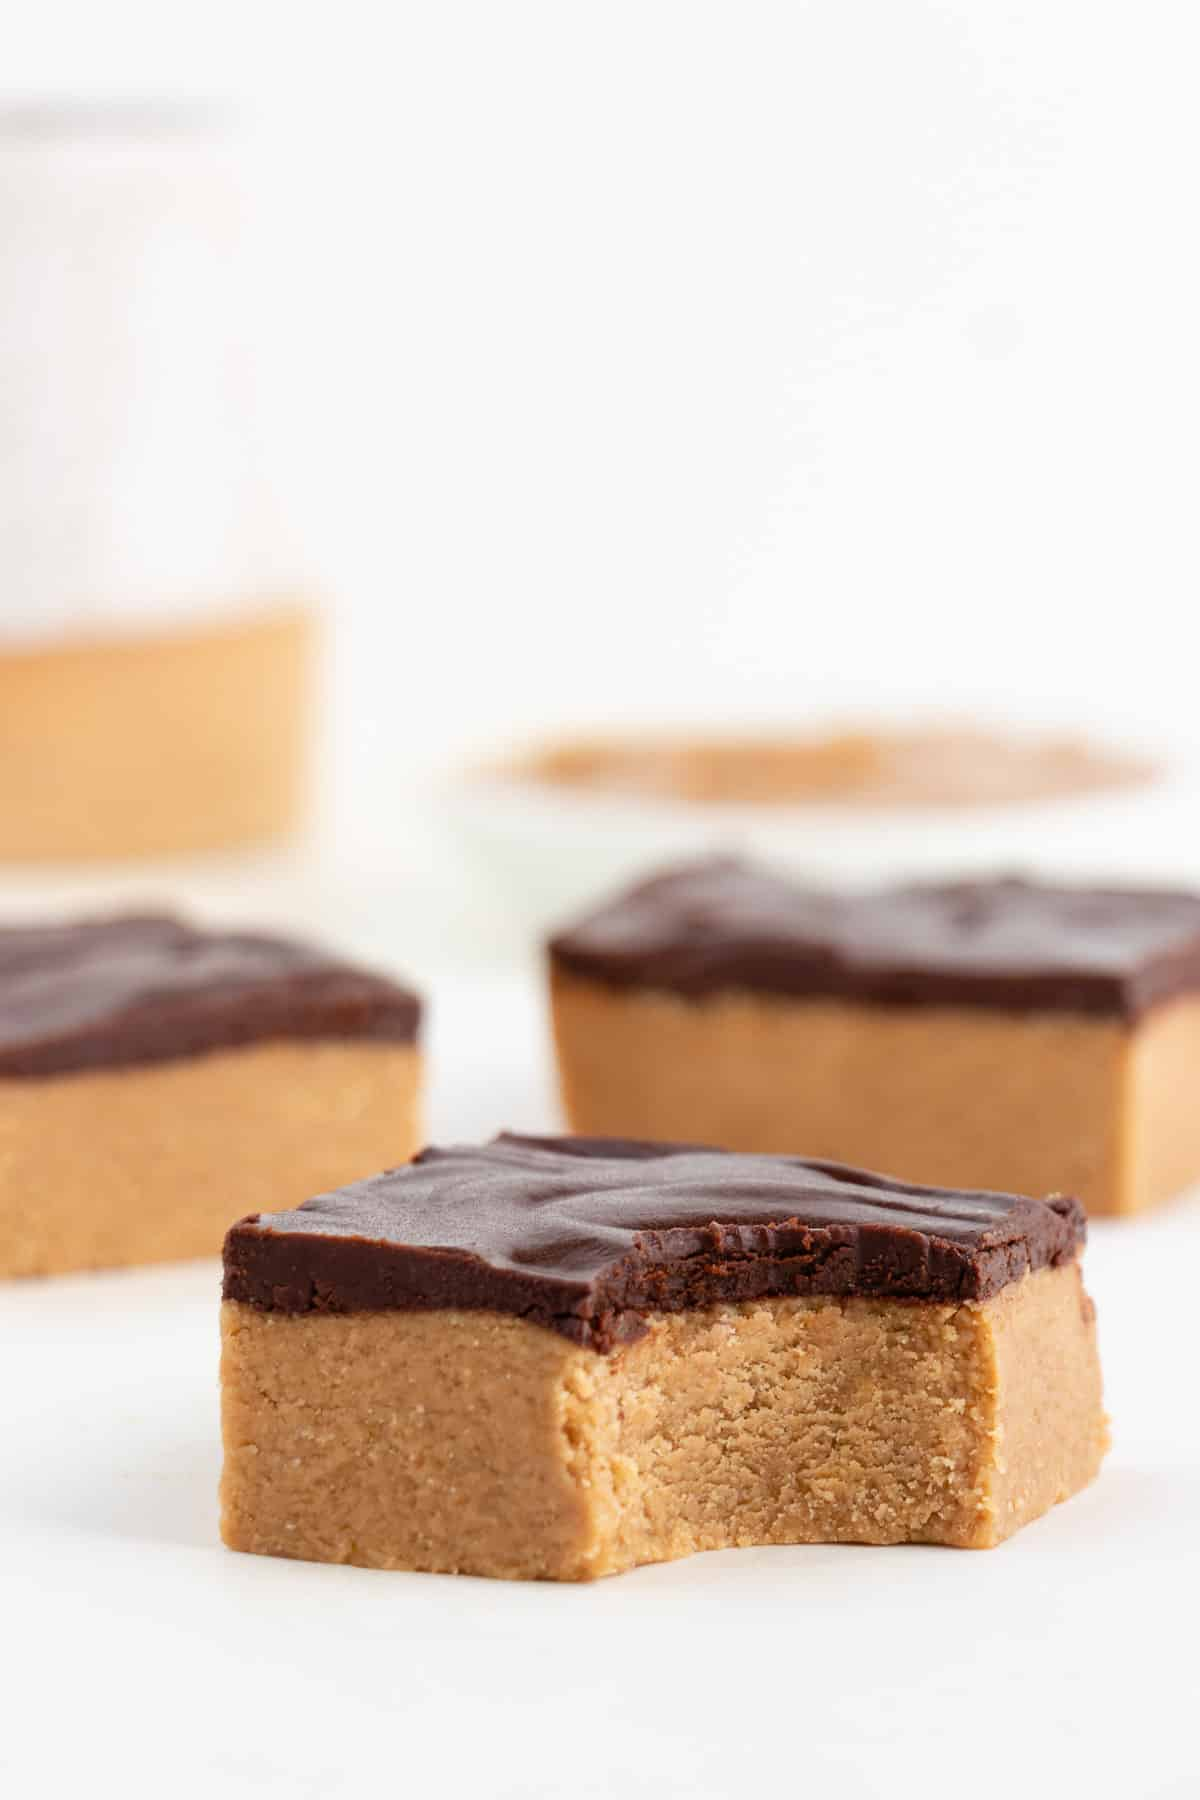 three no bake vegan chocolate peanut butter bars with a bite taken out of the center bar